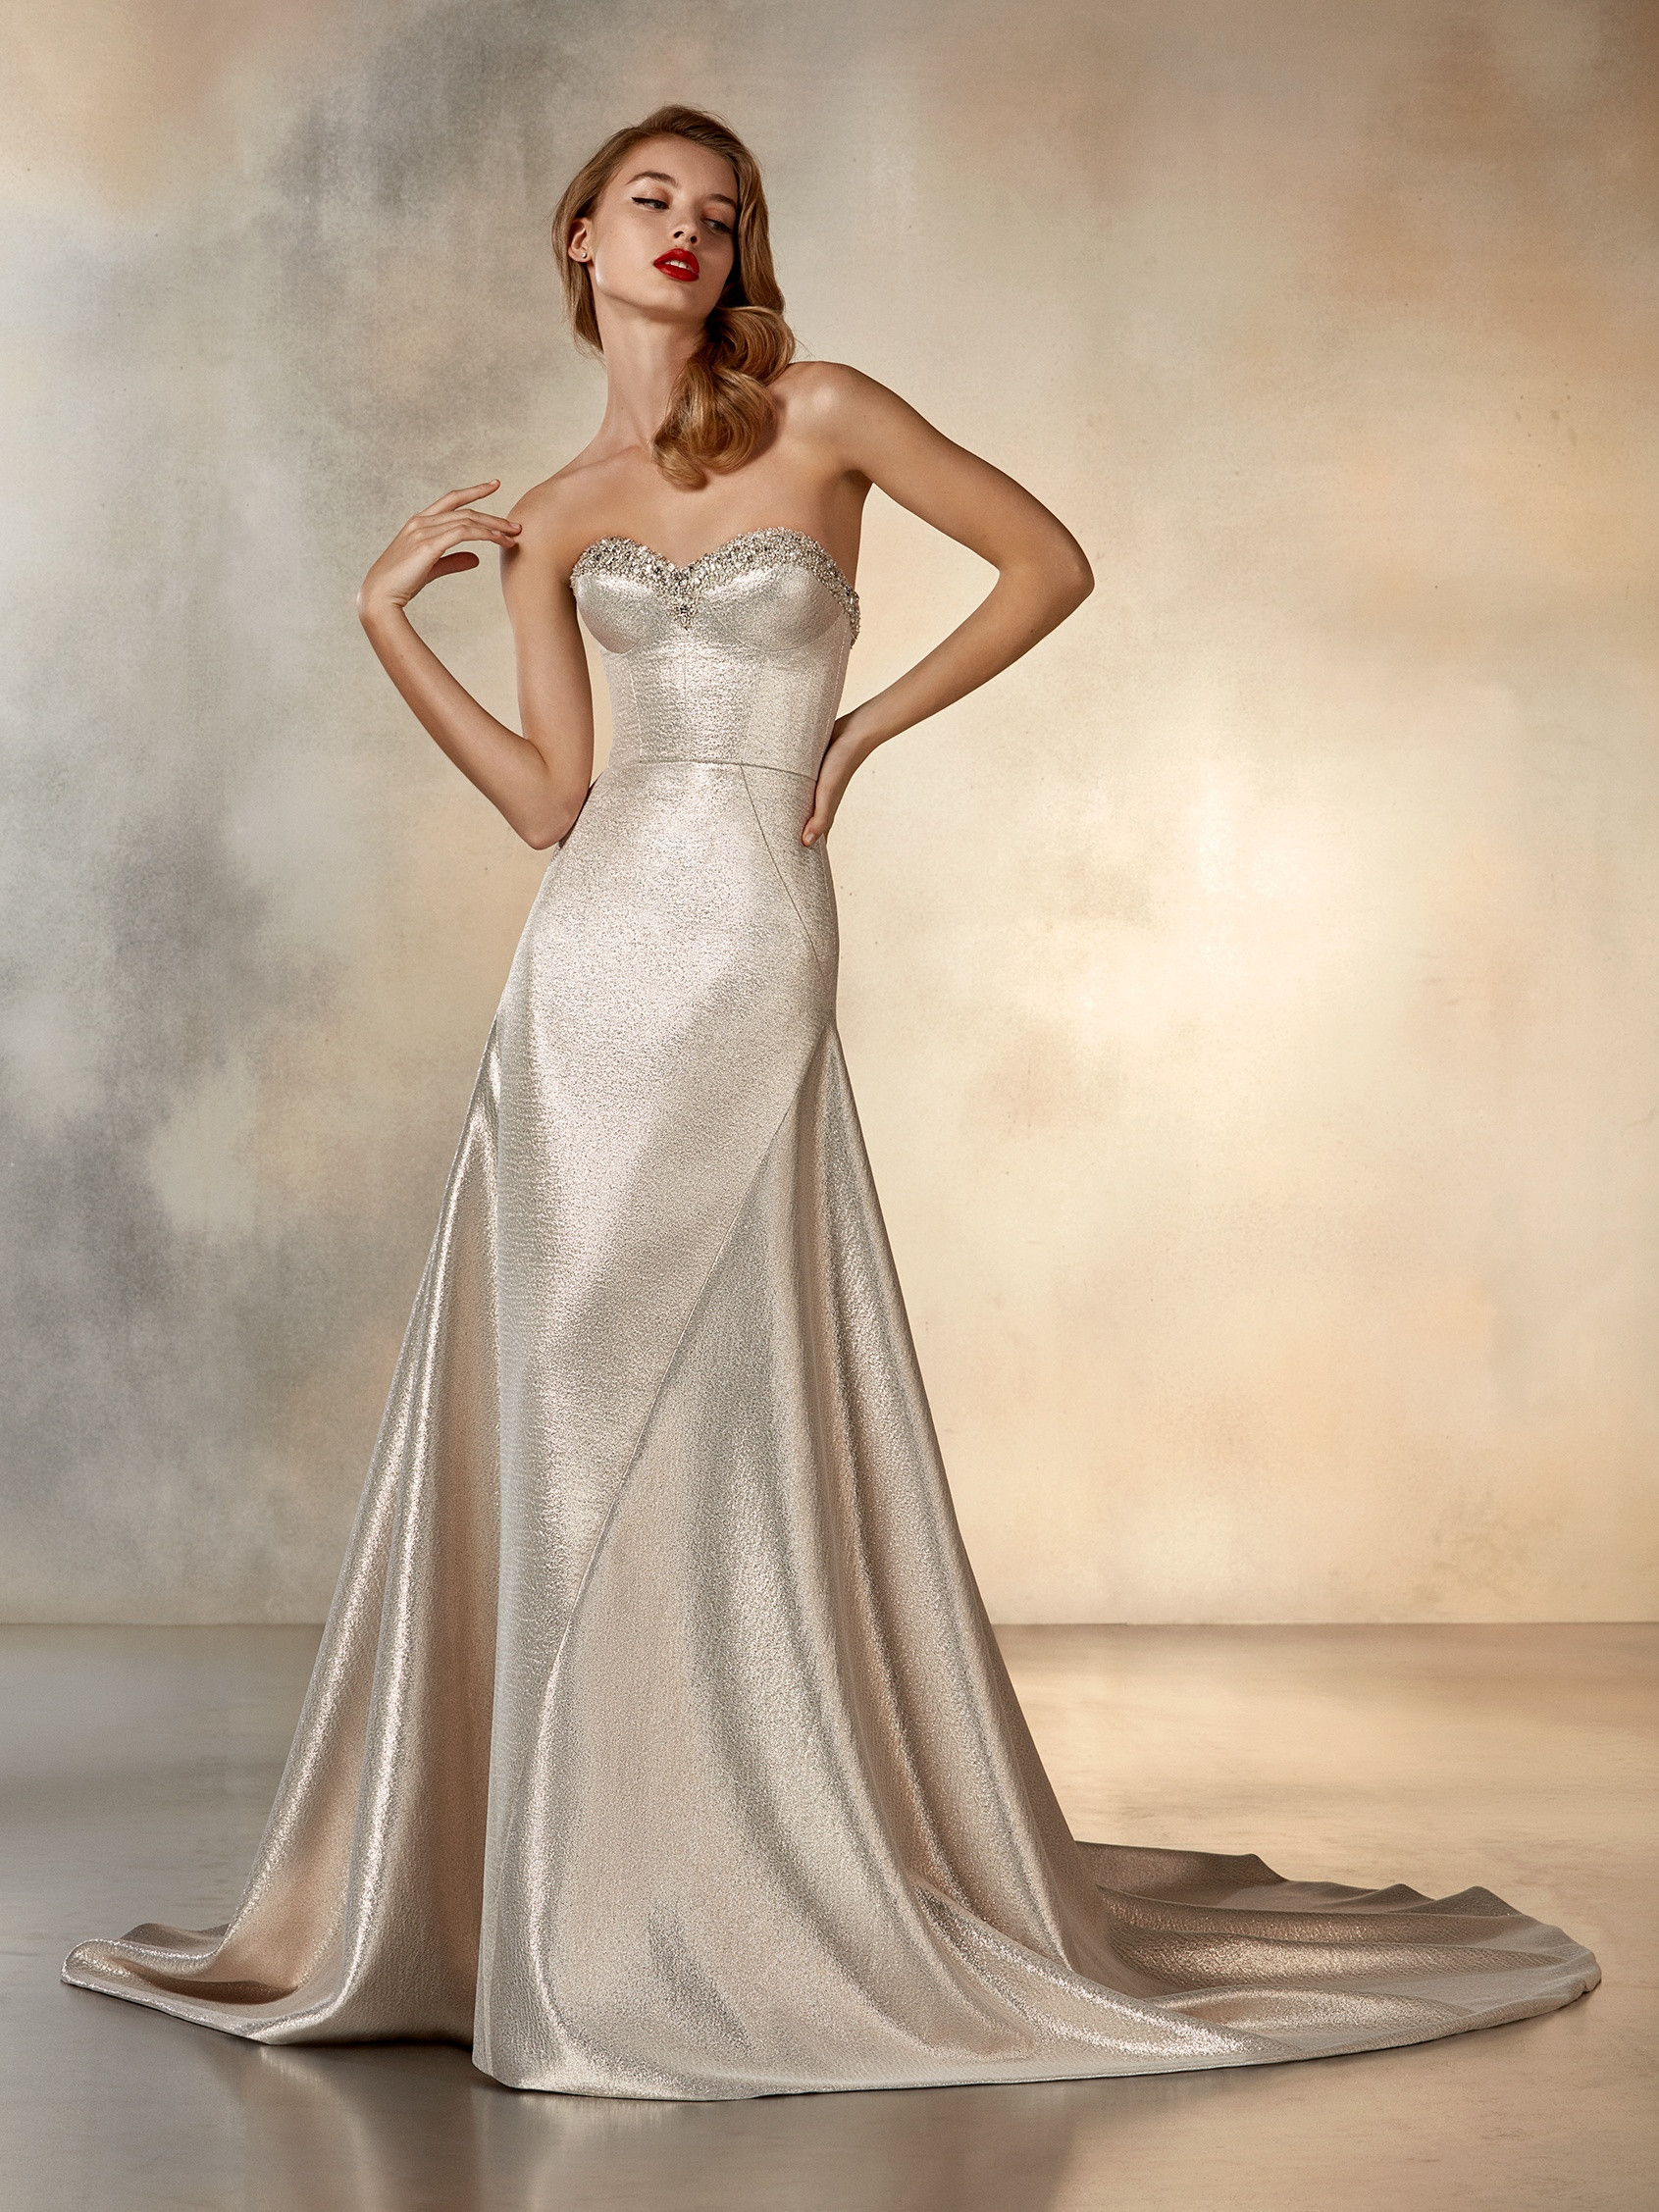 Mira Couture Pronovias Rising Wedding Dress Bridal Gown Barcelona Designer Chicago Boutique